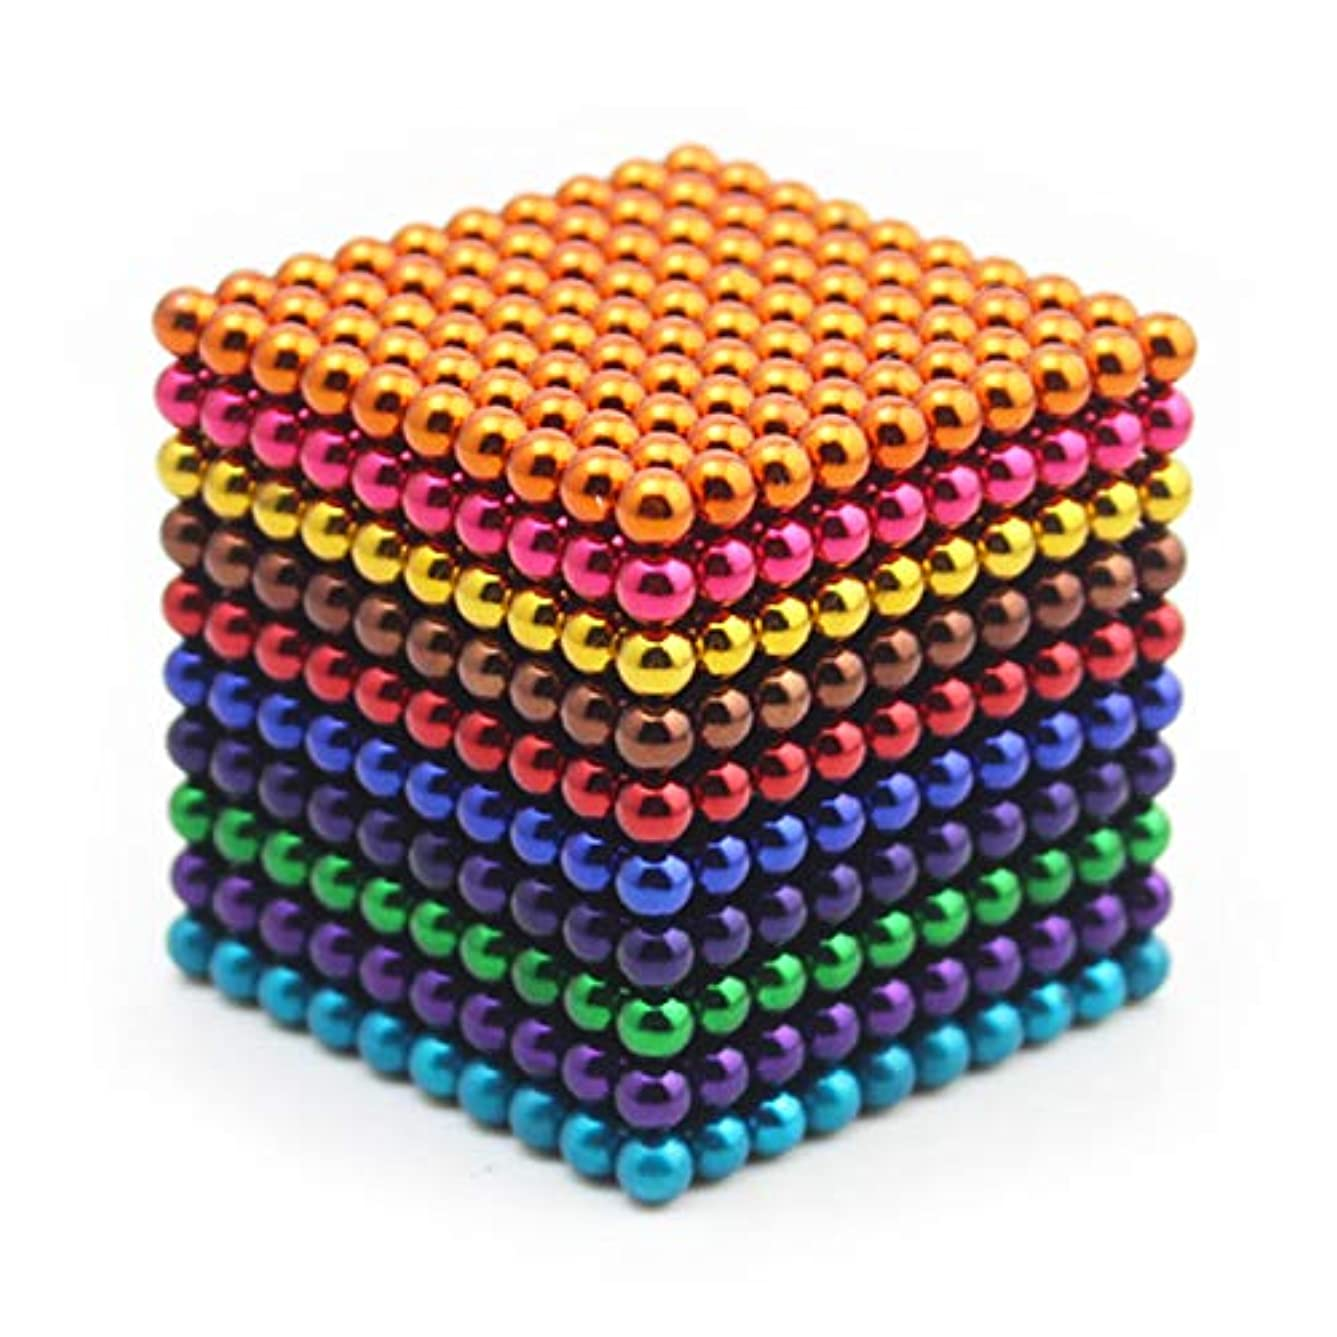 RLRY Upgraded 1000 Pieces 3 MM Colorful Magnets Sculpture Building Blocks Toys for Intelligence Development and Stress Relief